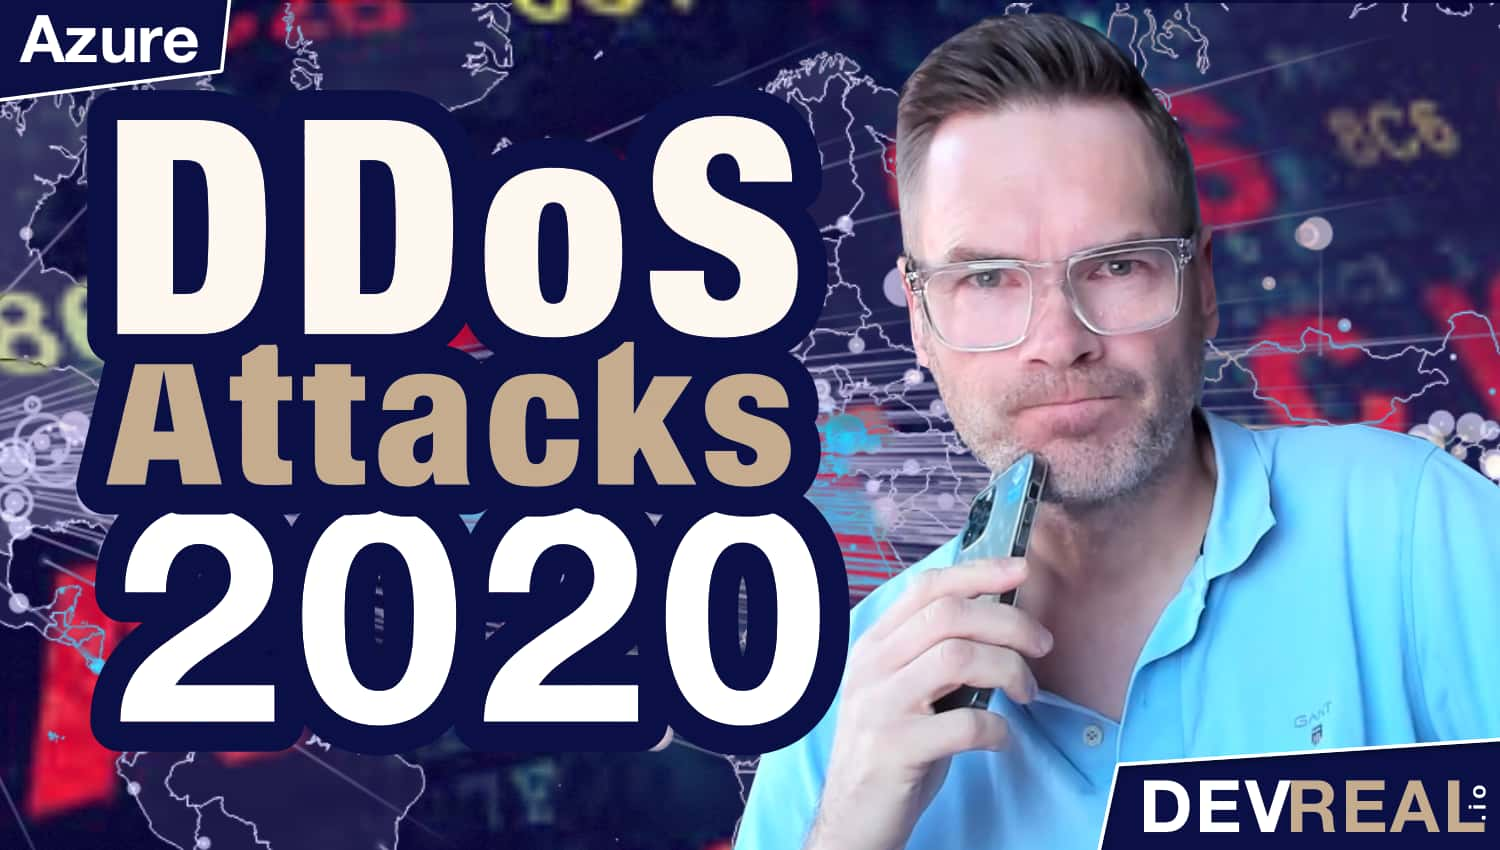 Insights & Trends of DDoS Attacks in 2020 on Azure